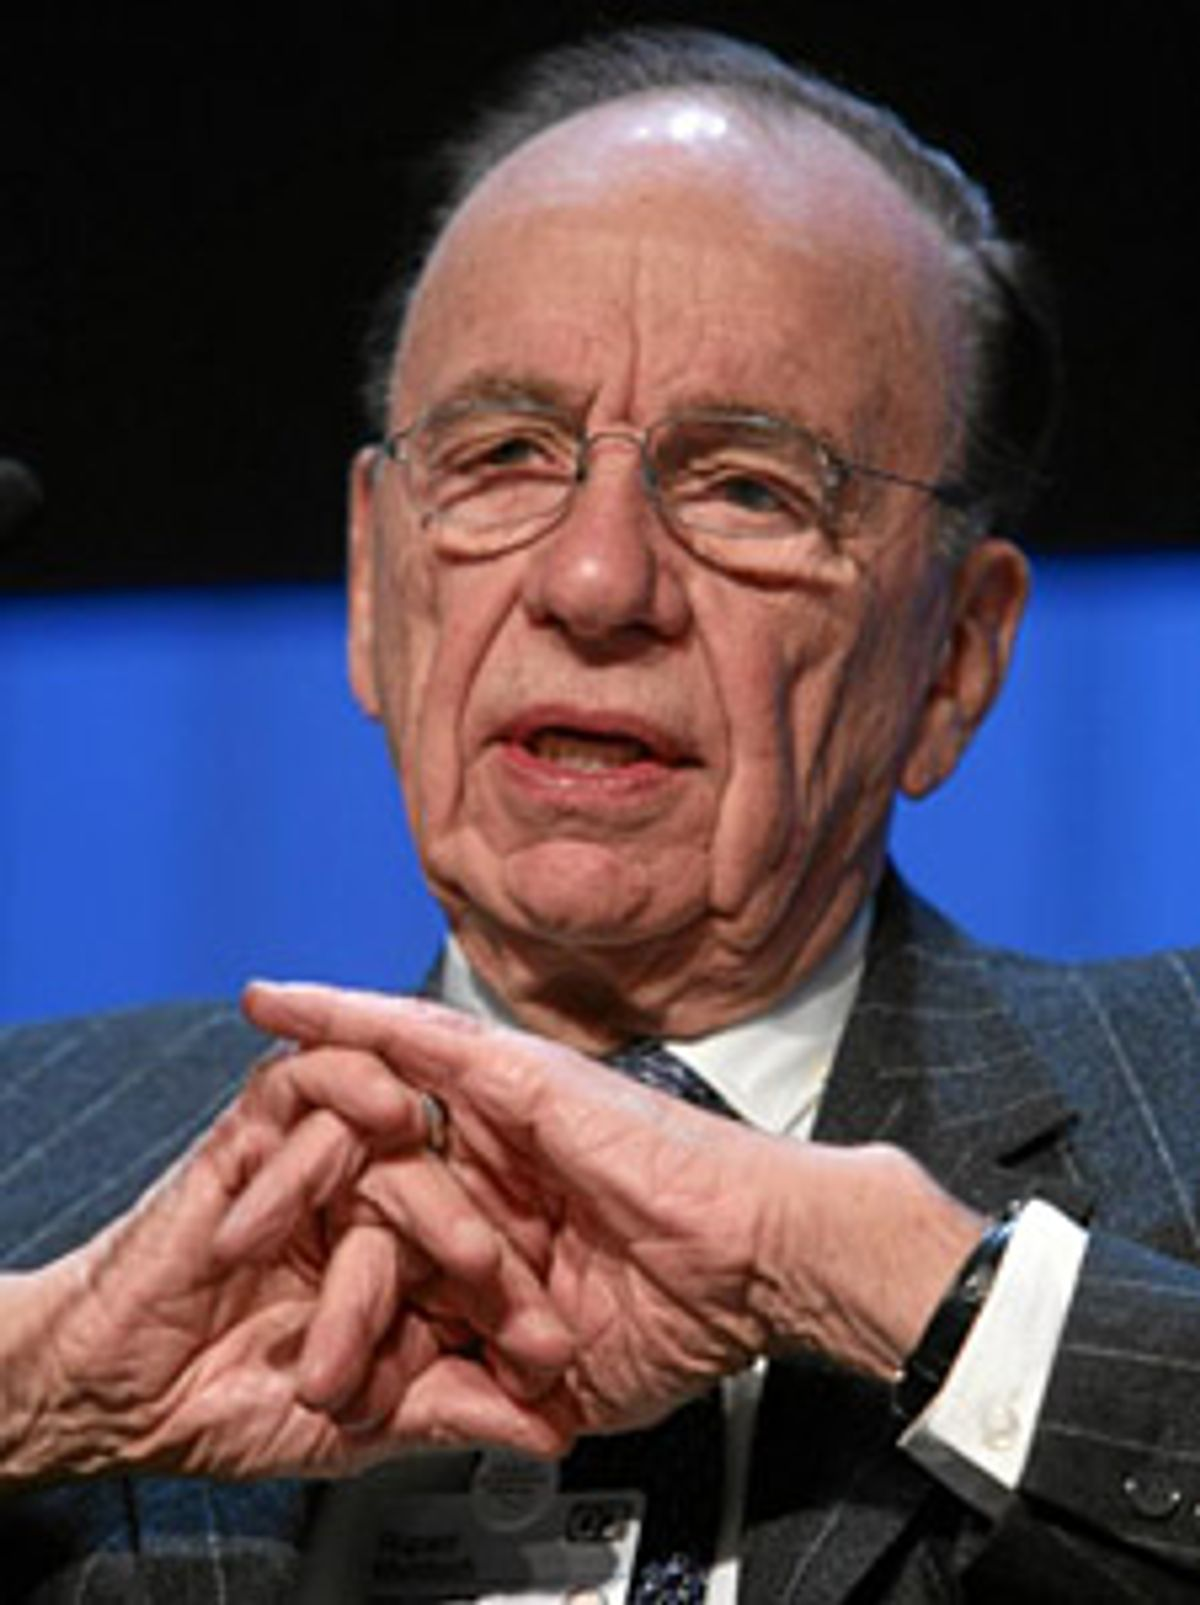 Session 107 Rupert Murdoch  Copyright by World Economic Forum    swiss-image.ch/Photo by     +++No resale, no archive+++